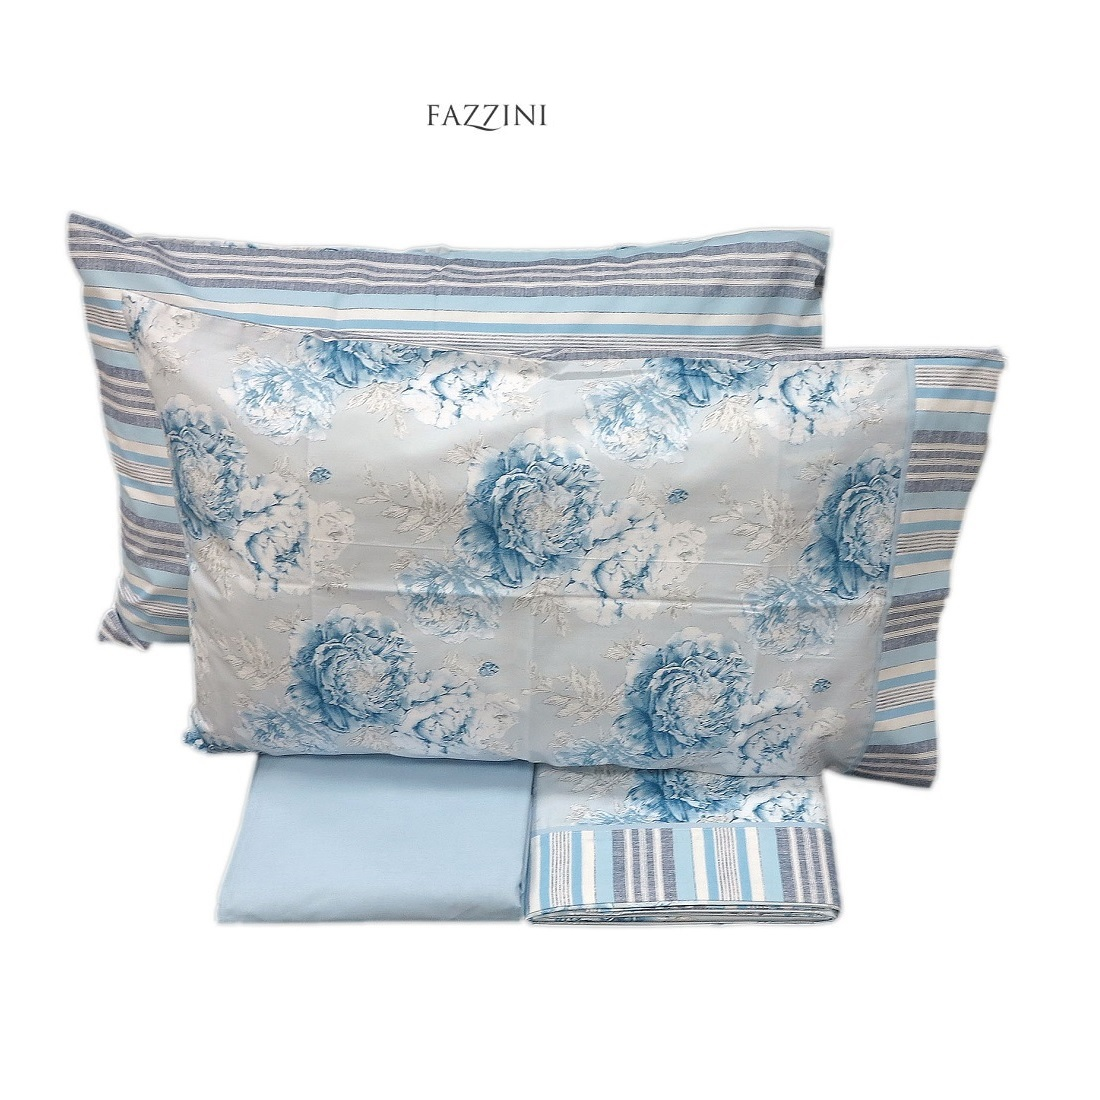 Lenzuola Fazzini Bloom Matrimoniale Puro Cotone Made in Italy